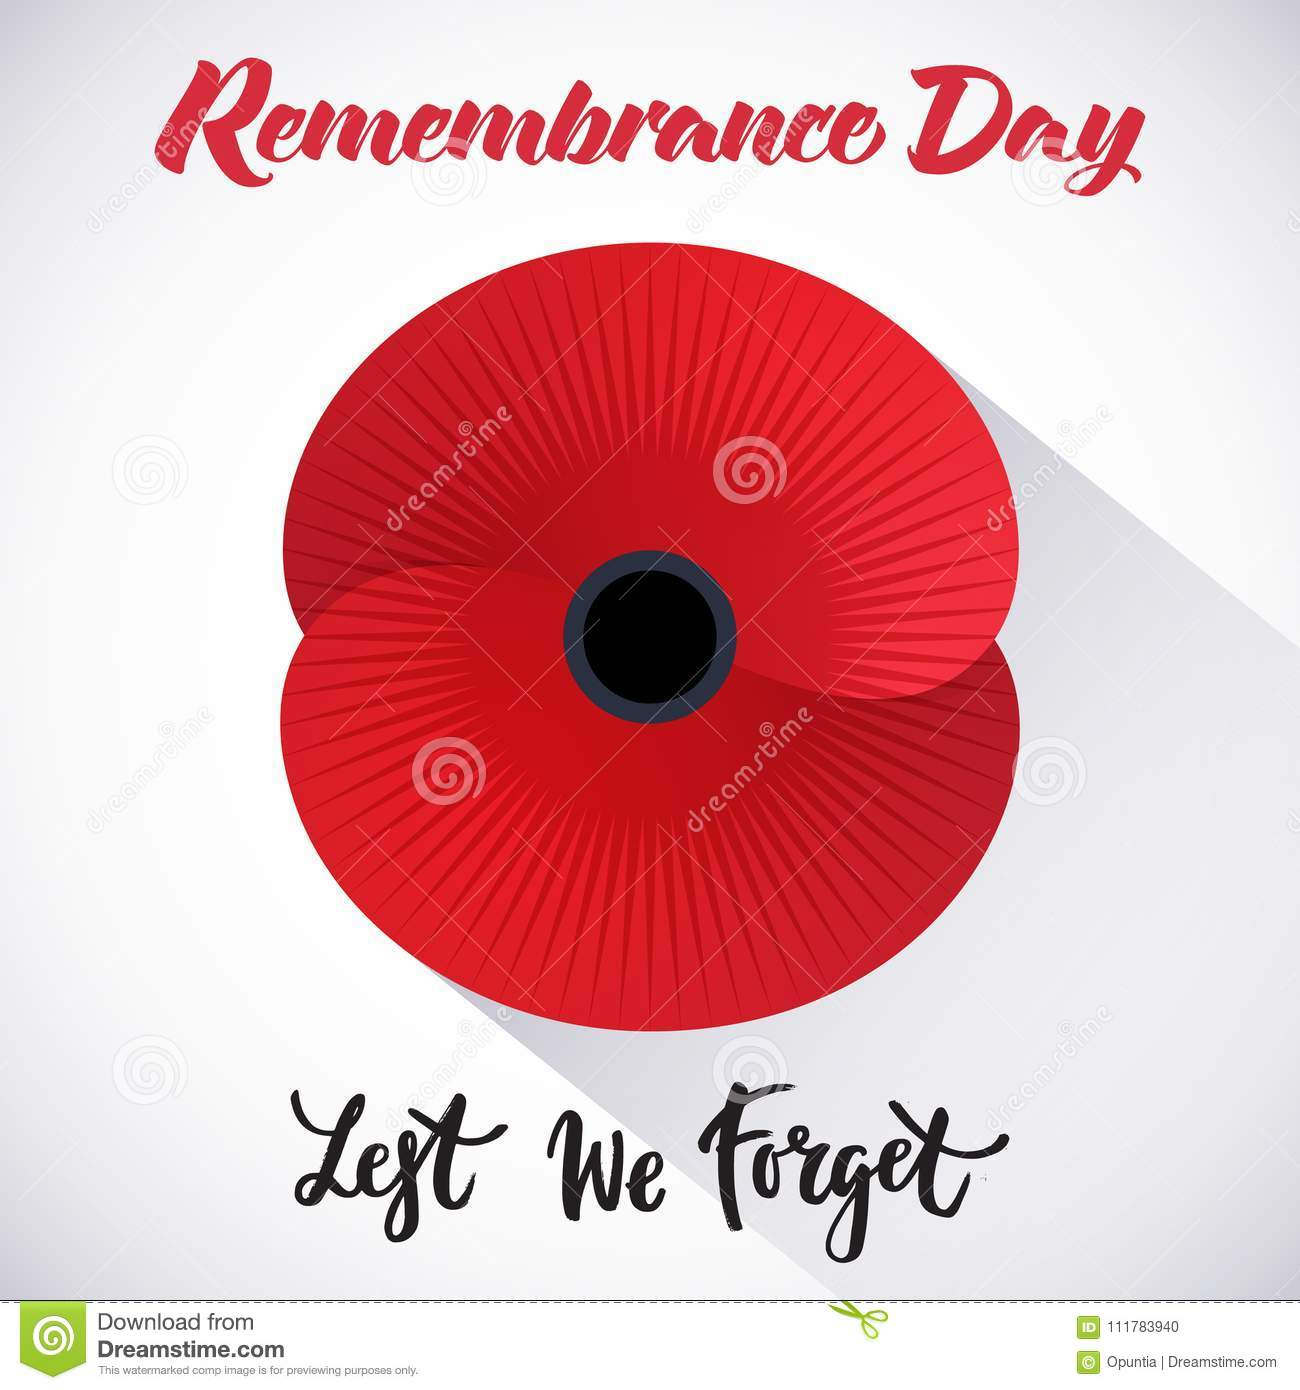 Remembrance Day Poster Stock Illustration. Illustration Of